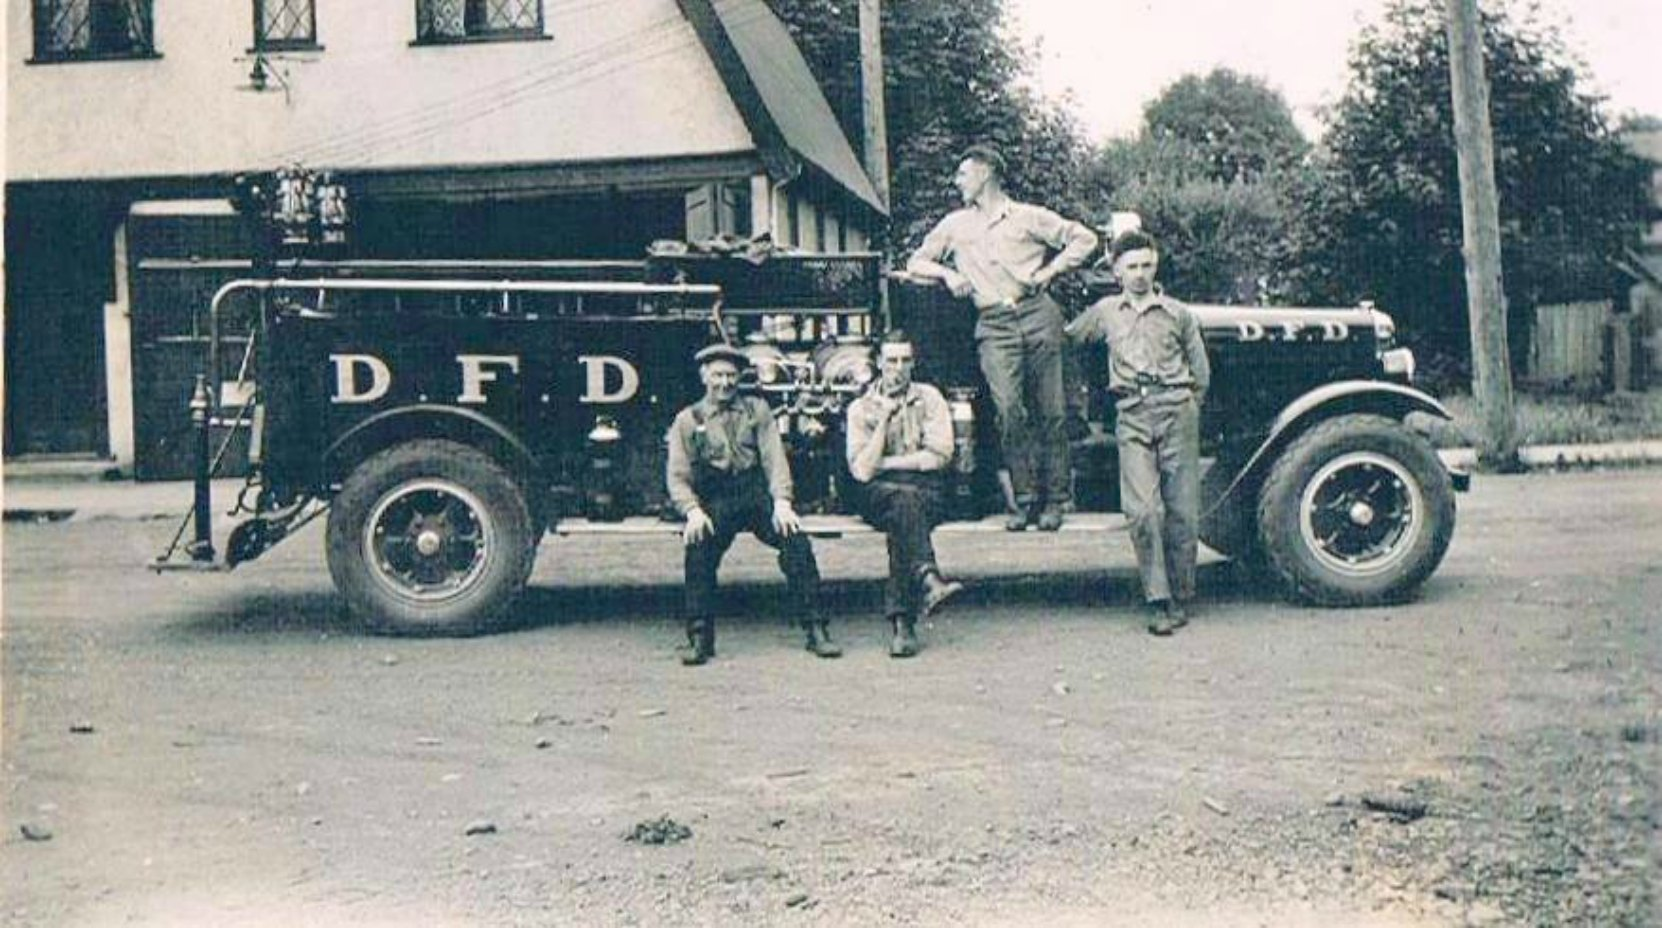 Members of the Duncan Volunteer Fire Department in the summer of 1929 outside the old Fire Hall on Canada Avenue (now demolished). Left to right: Daniel R. Hattie, Bill Talbot, Claude Green, Melvin Harris (photo courtesy of Sylvia J. Dyer - family collection, used with permission)